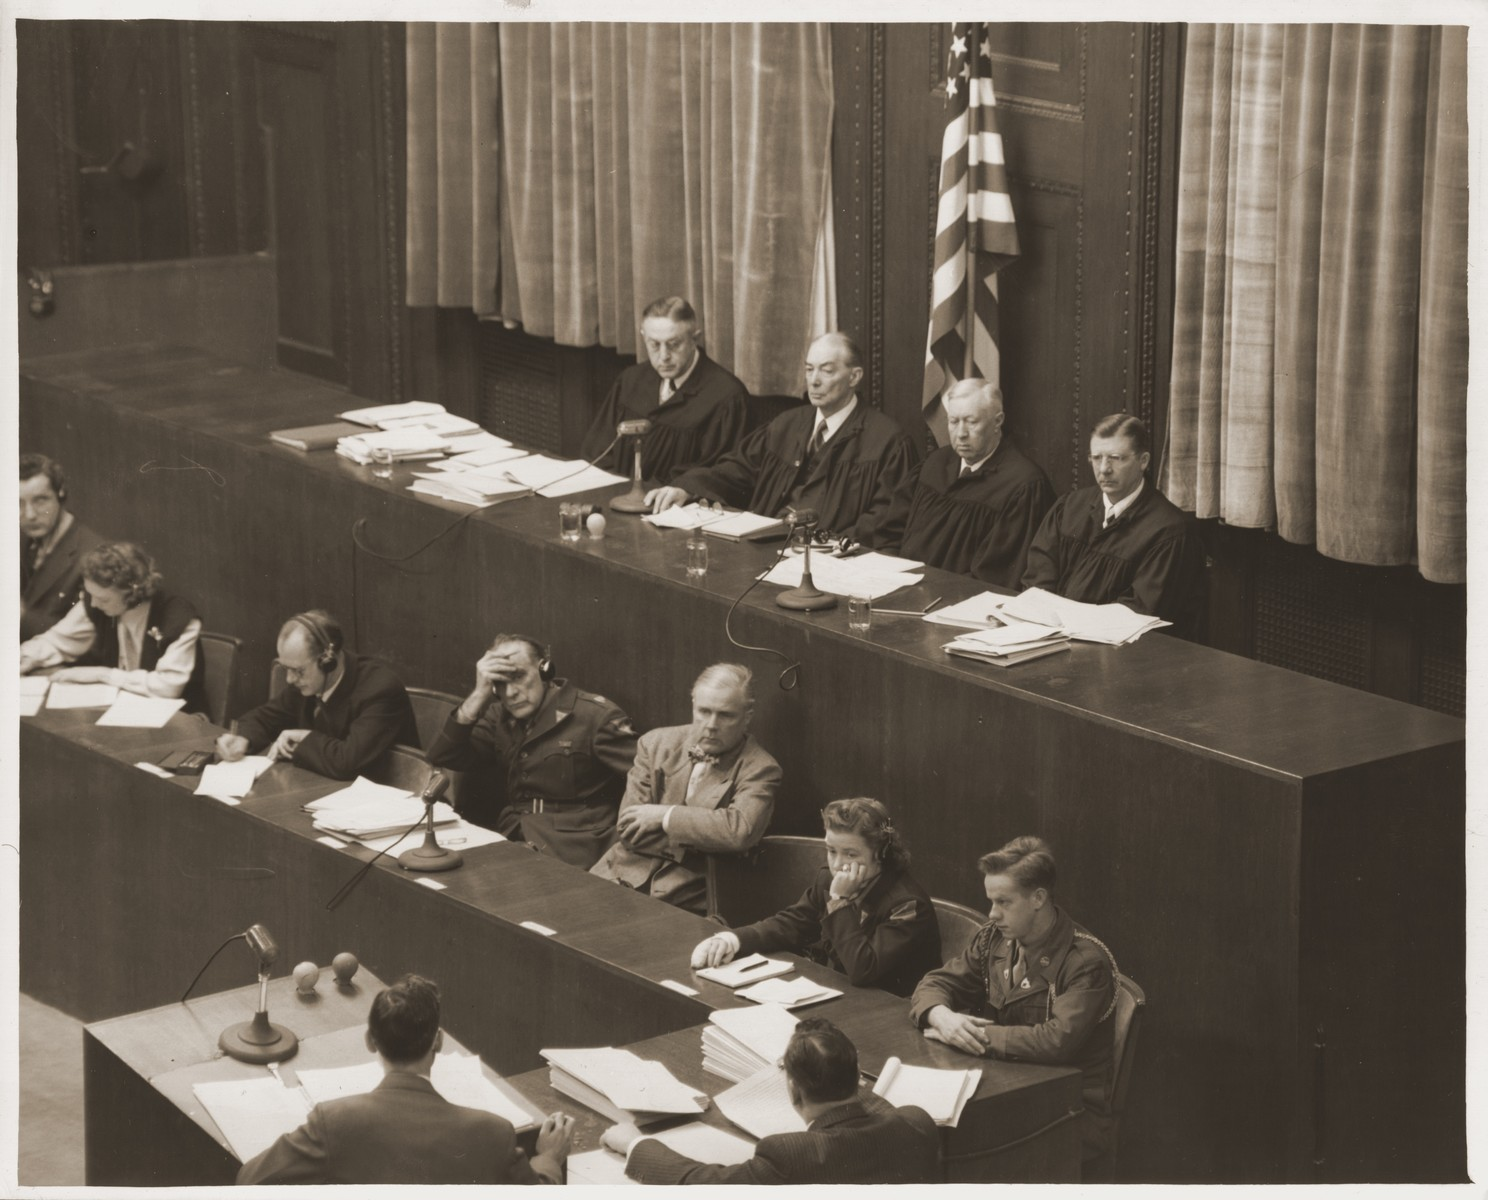 The judges of the Military Tribunal I during a session of the Medical Case (Doctors') Trial in Nuremberg.    Sitting from left to right along the top are Harold L. Sebring, Walter B. Beals, Johnson T. Crawford, and Victor C. Swearington.  Below them are the court reporters.